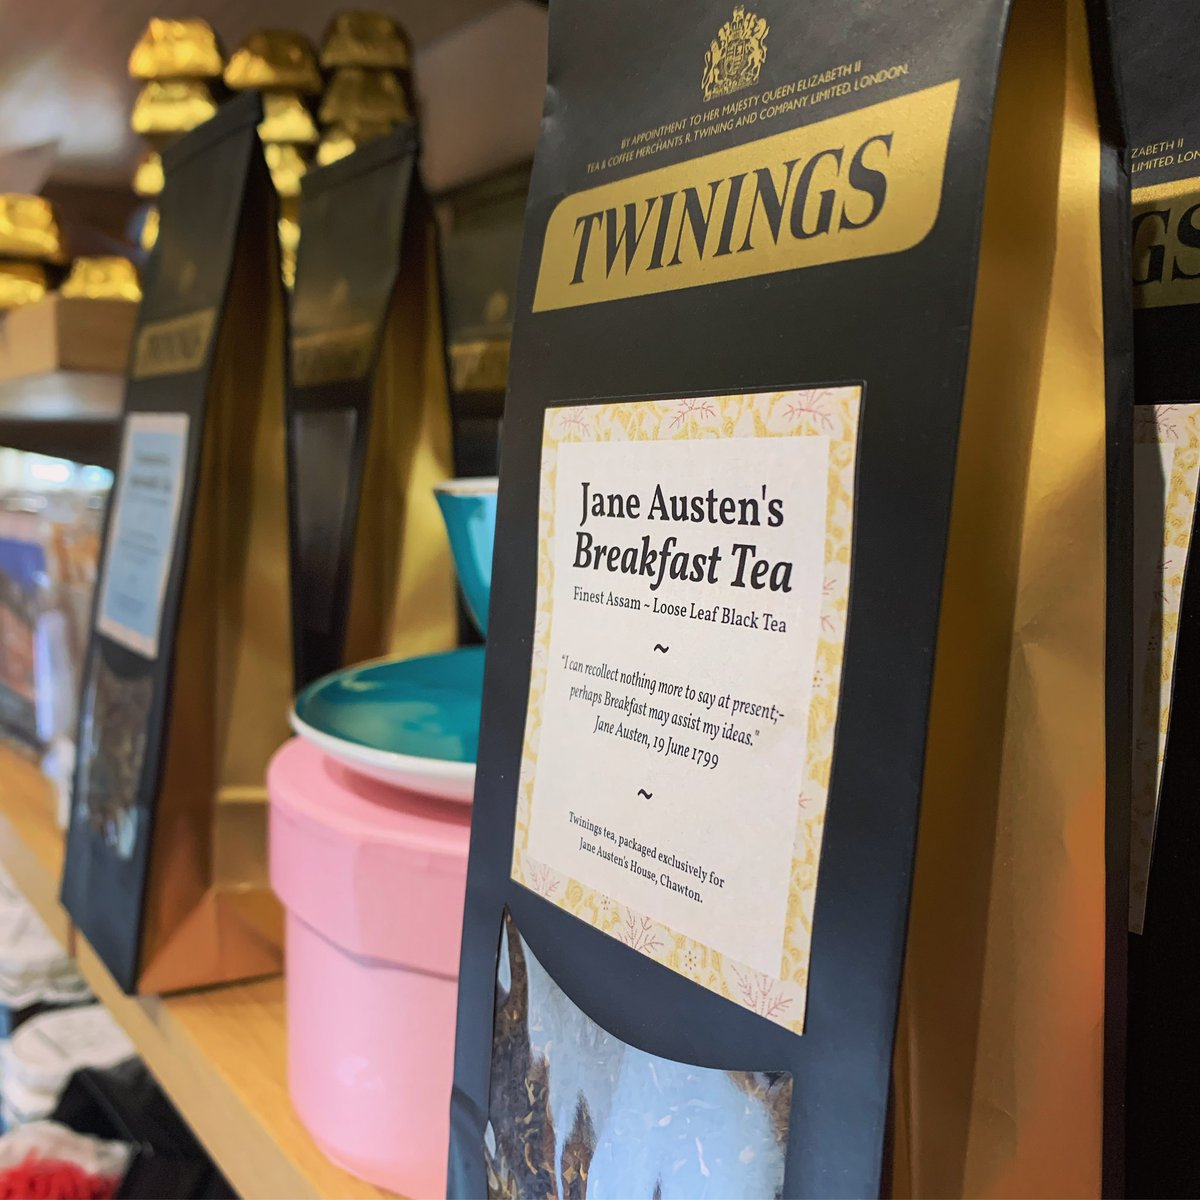 Do you have a tea drinking #JaneAusten fan in your life? If so, we have the perfect Christmas gift idea for you! We've just launched three Jane Austen teas, exclusively packaged for our Gift Shop by @TwiningsTeaUK. We're off to put the kettle on... ☕️